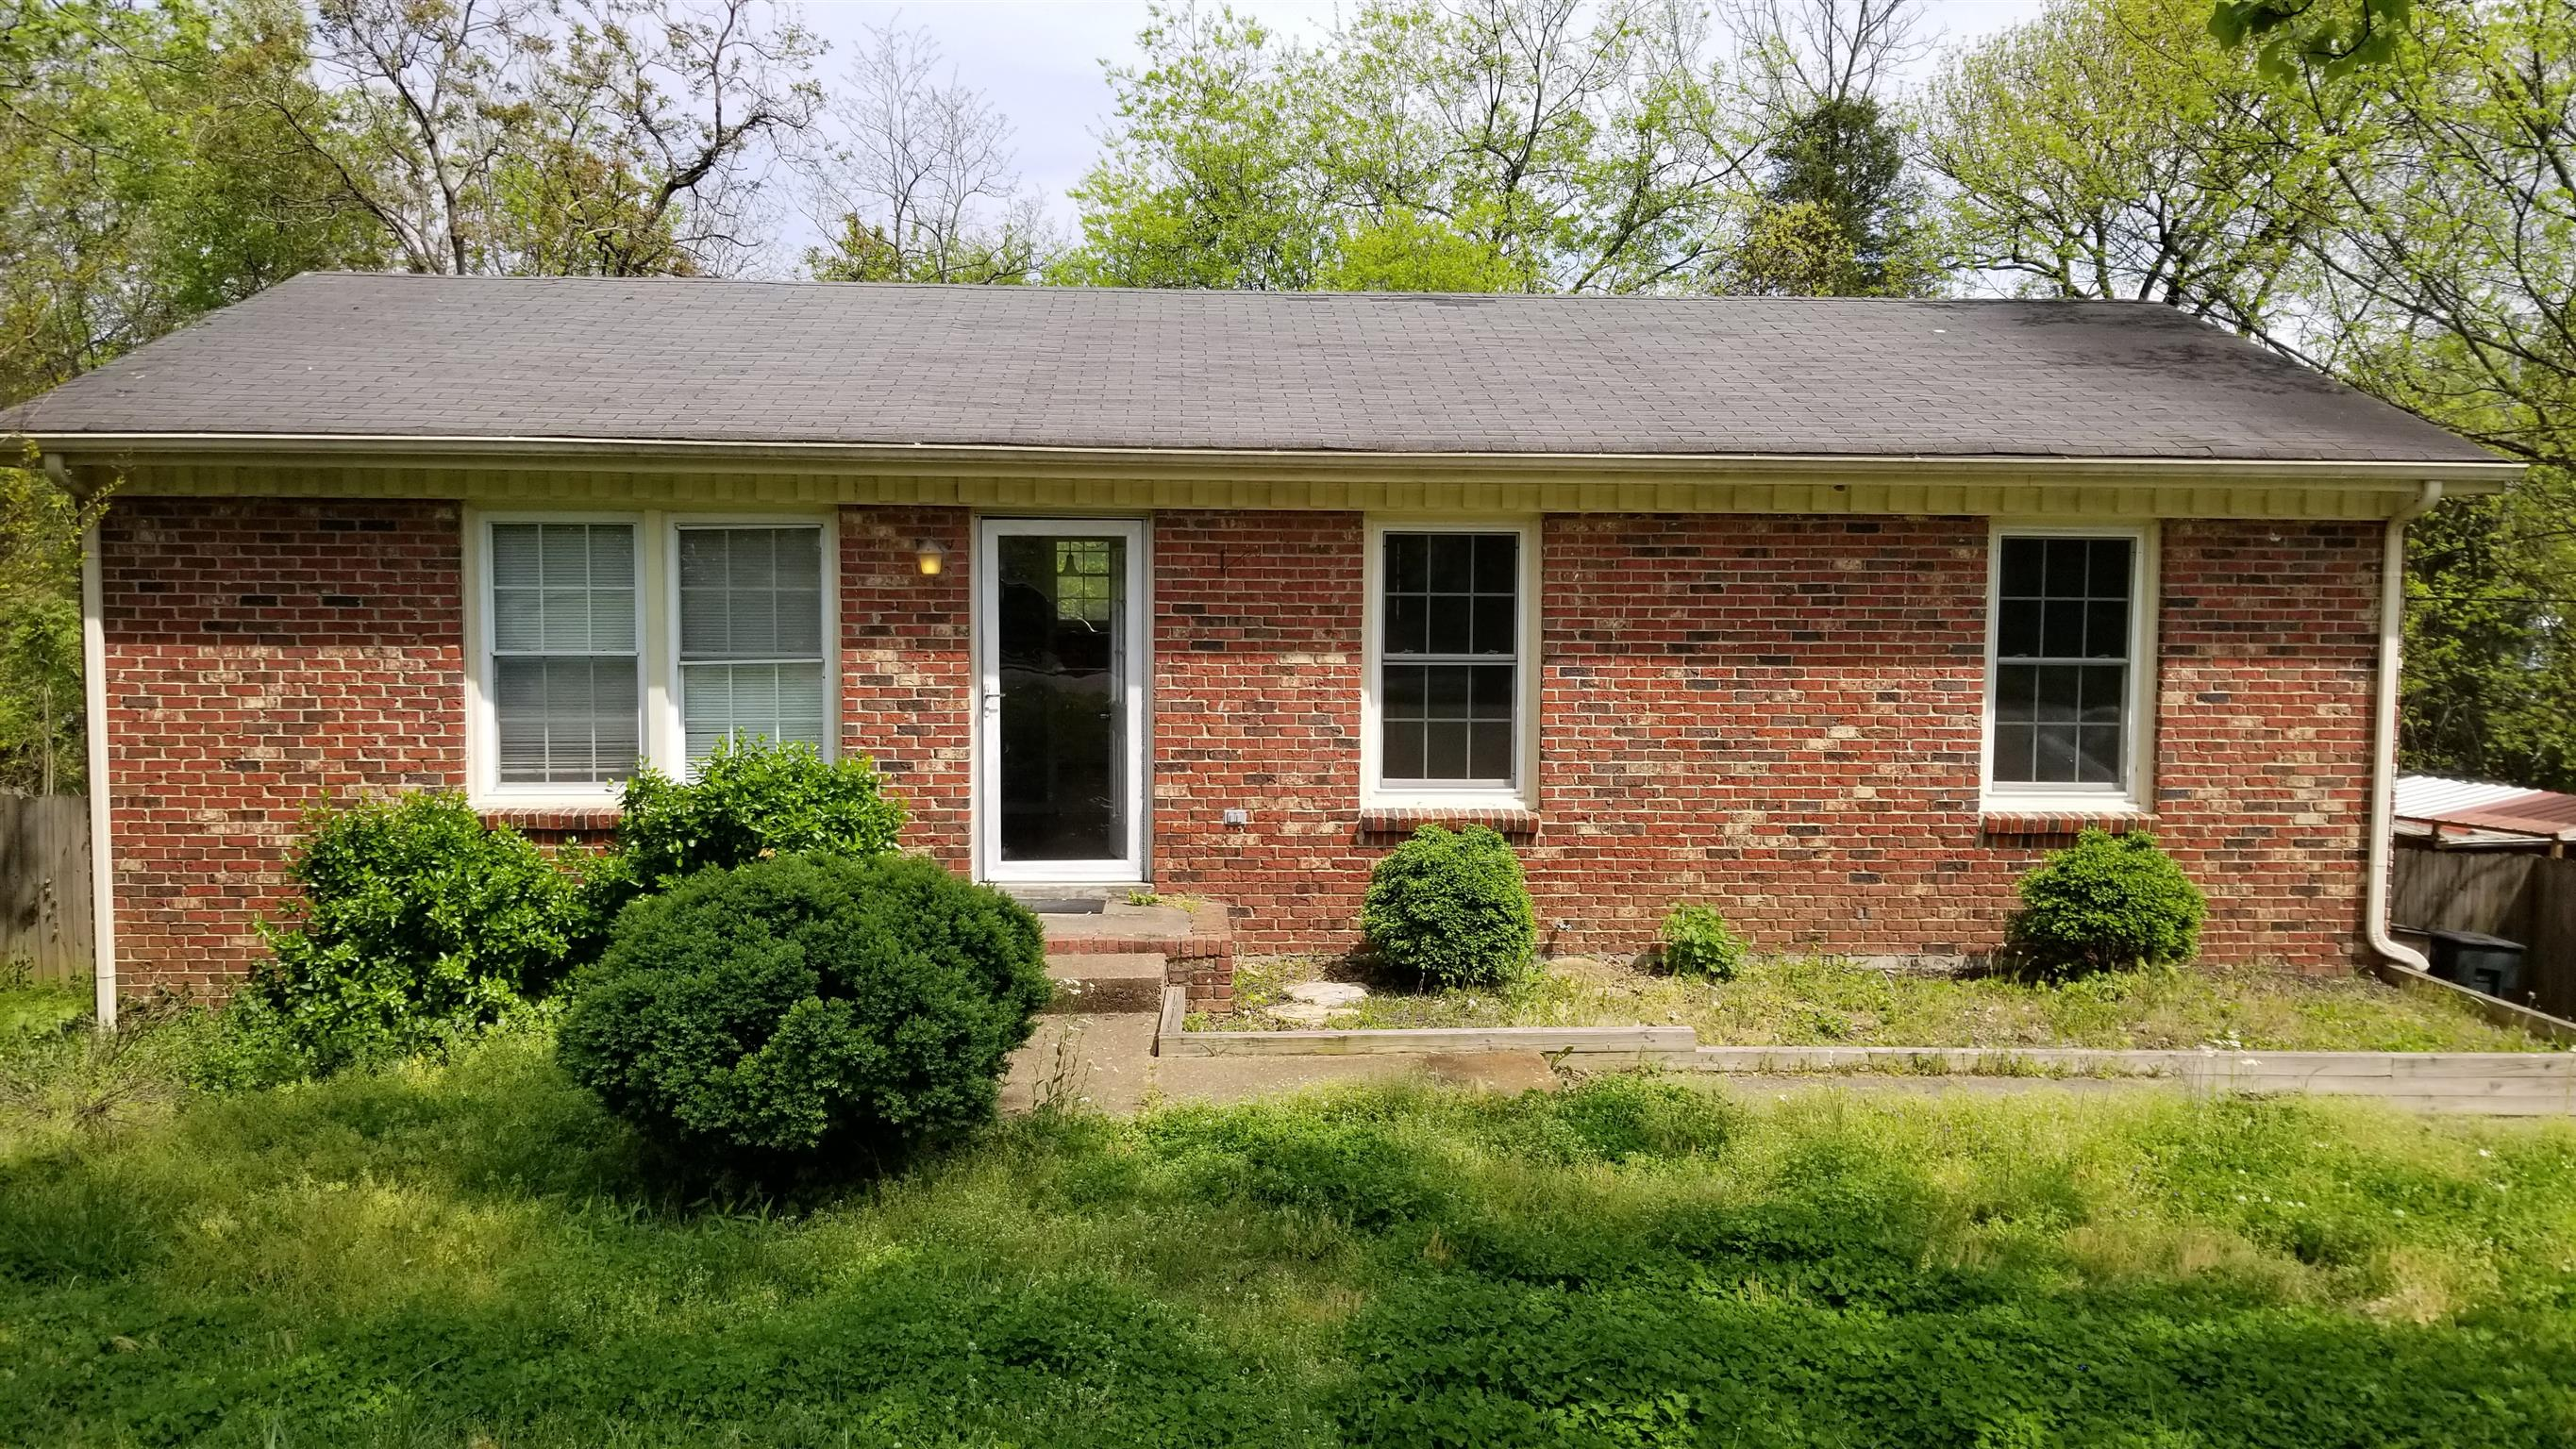 104 Robert Yoest Dr, Nashville-Antioch in Davidson County County, TN 37013 Home for Sale